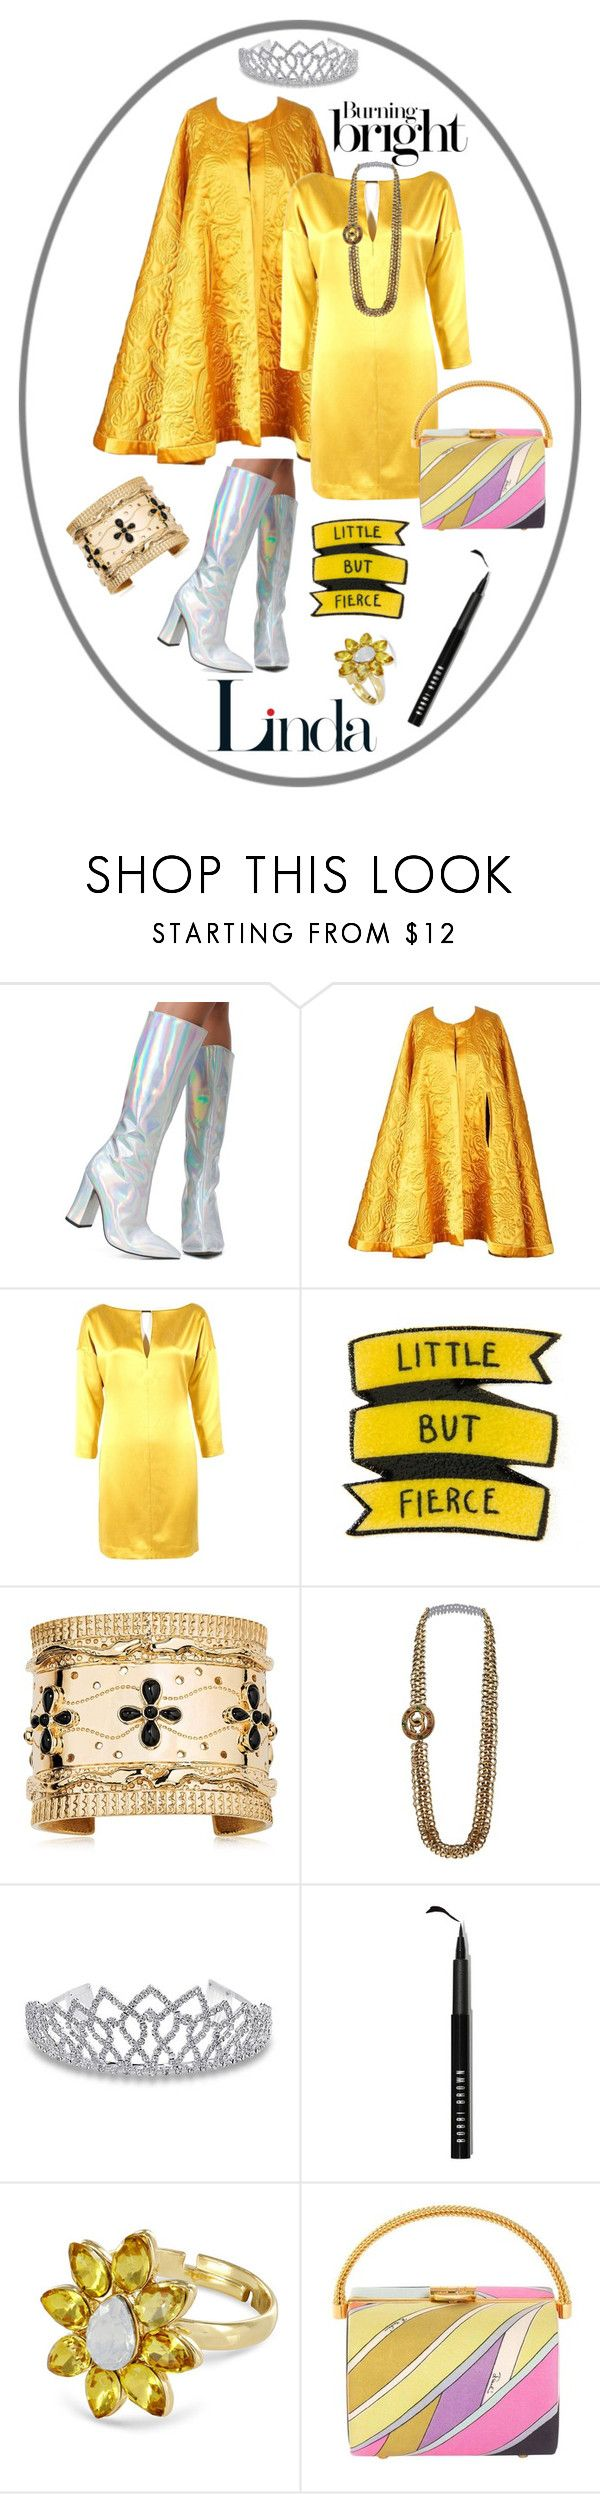 """""""Linda Ramone"""" by klcx13 ❤ liked on Polyvore featuring Current Mood, Yves Saint Laurent, KaufmanFranco, Aurélie Bidermann, Chanel, Bling Jewelry, Bobbi Brown Cosmetics, Johnny Loves Rosie and Emilio Pucci"""